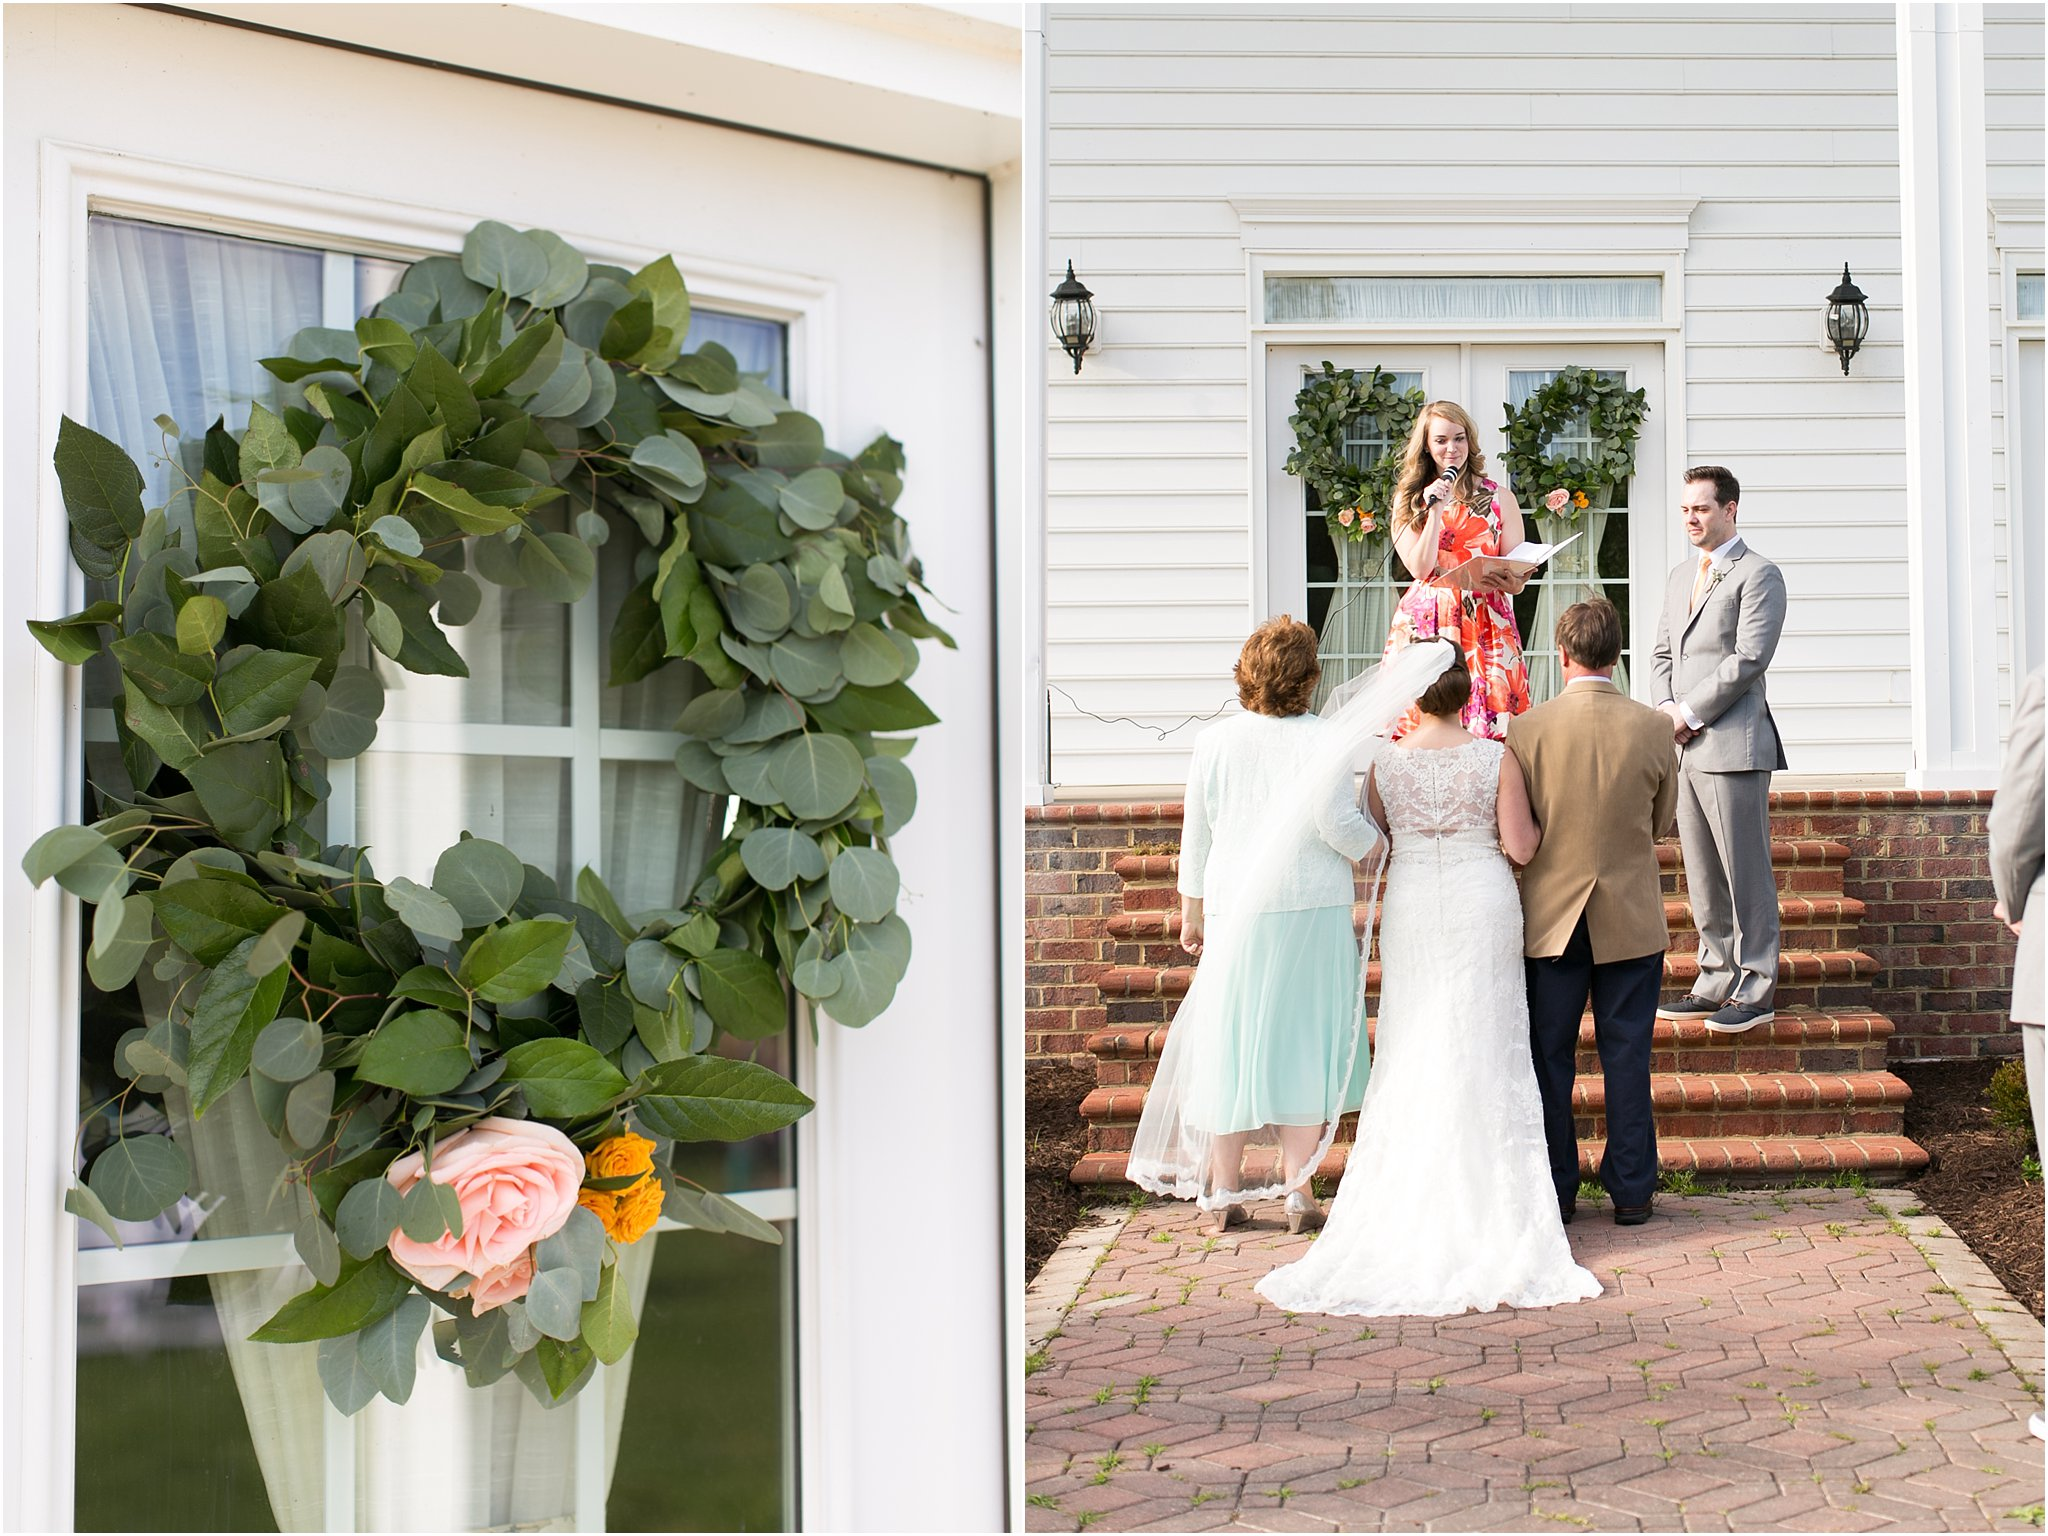 jessica_ryan_photography_holly_ridge_manor_wedding_roost_flowers_jamie_leigh_events_dhalia_edwards_candid_vibrant_wedding_colors_1292